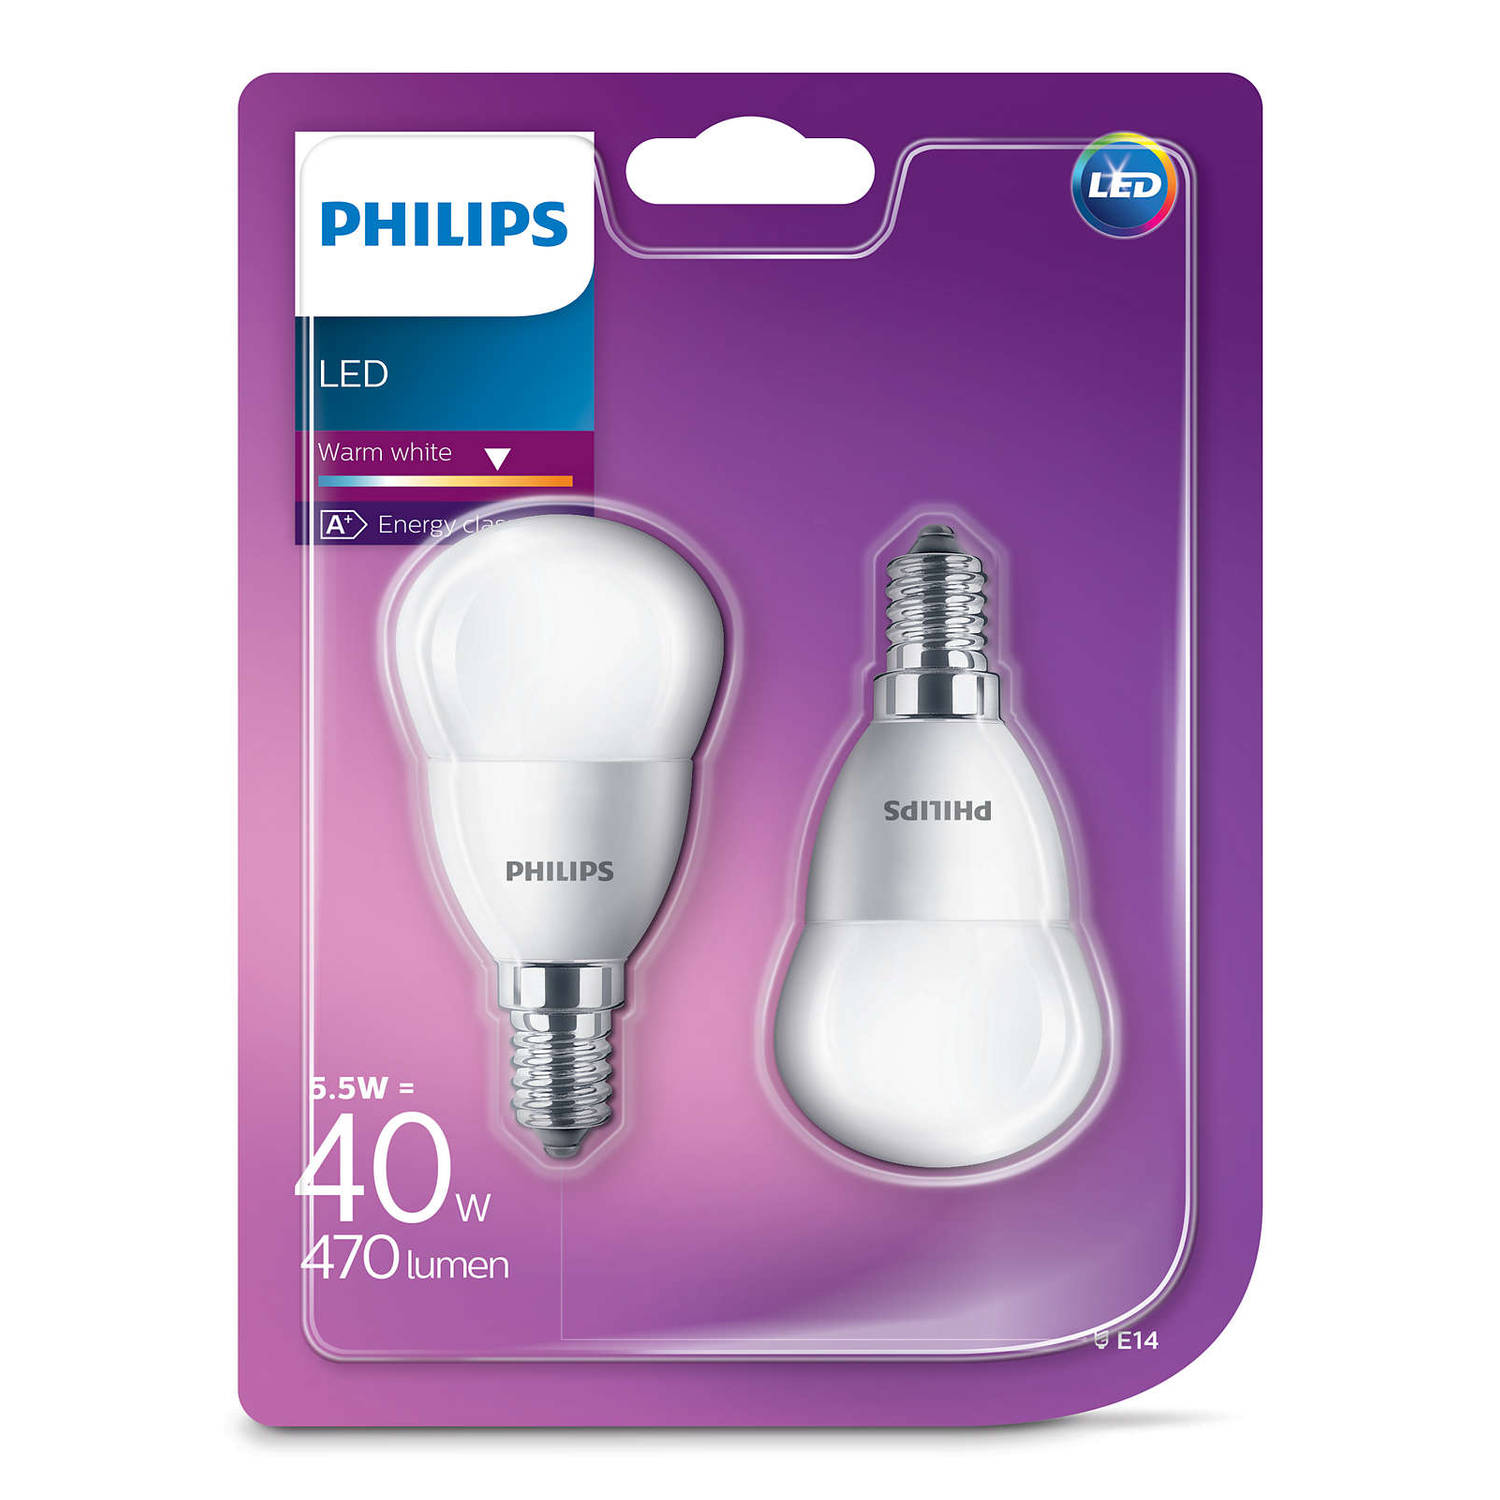 Philips led kogellamp e14 5.5w 2700k extra warm wit (blister 2 stuks)